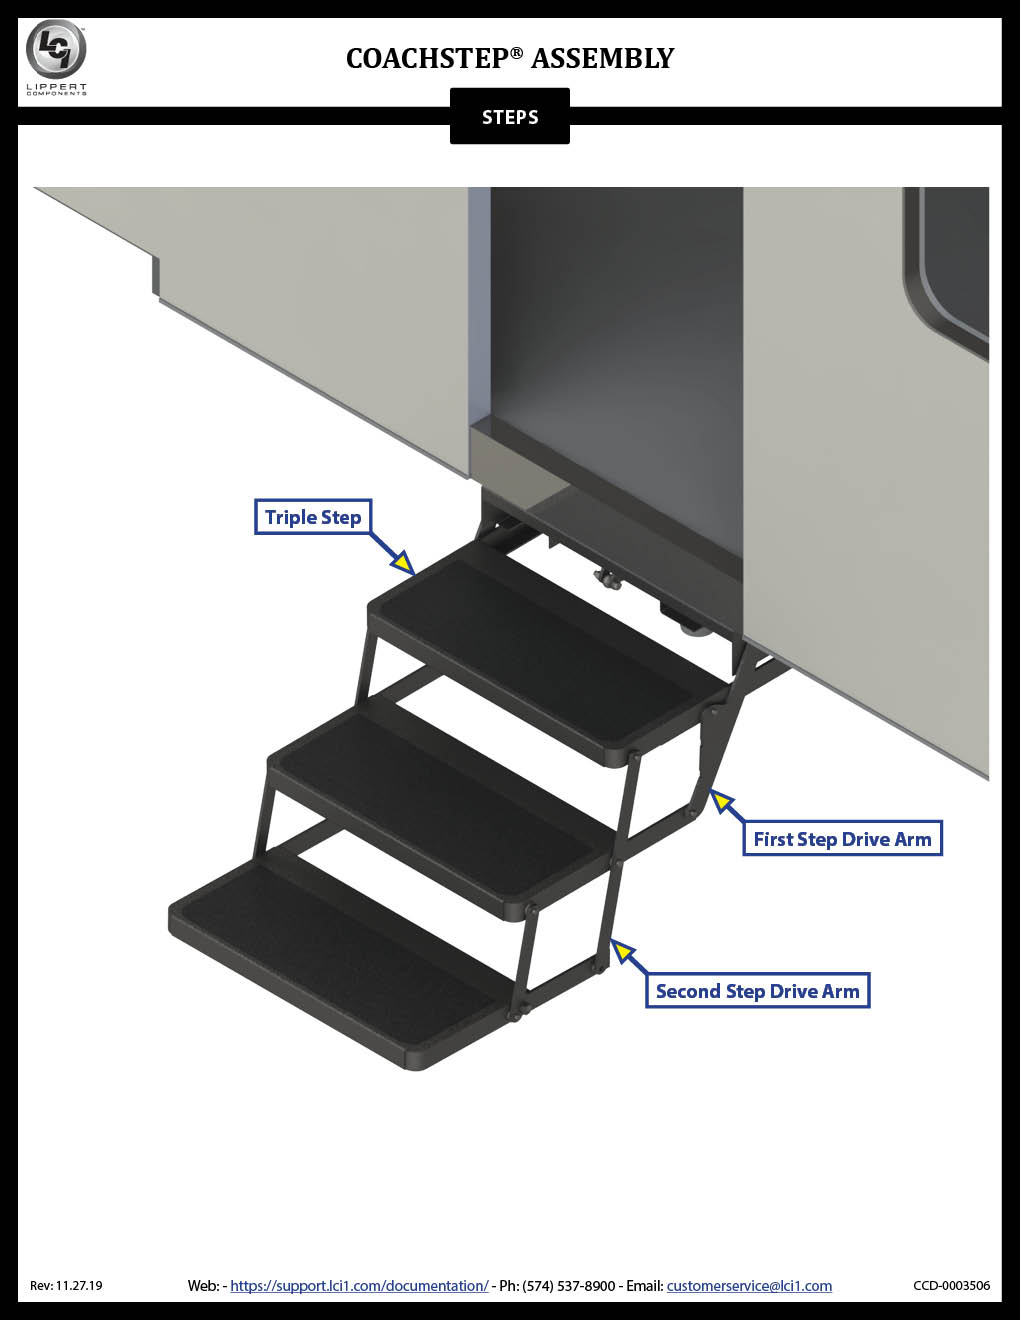 Coachstep® Assembly